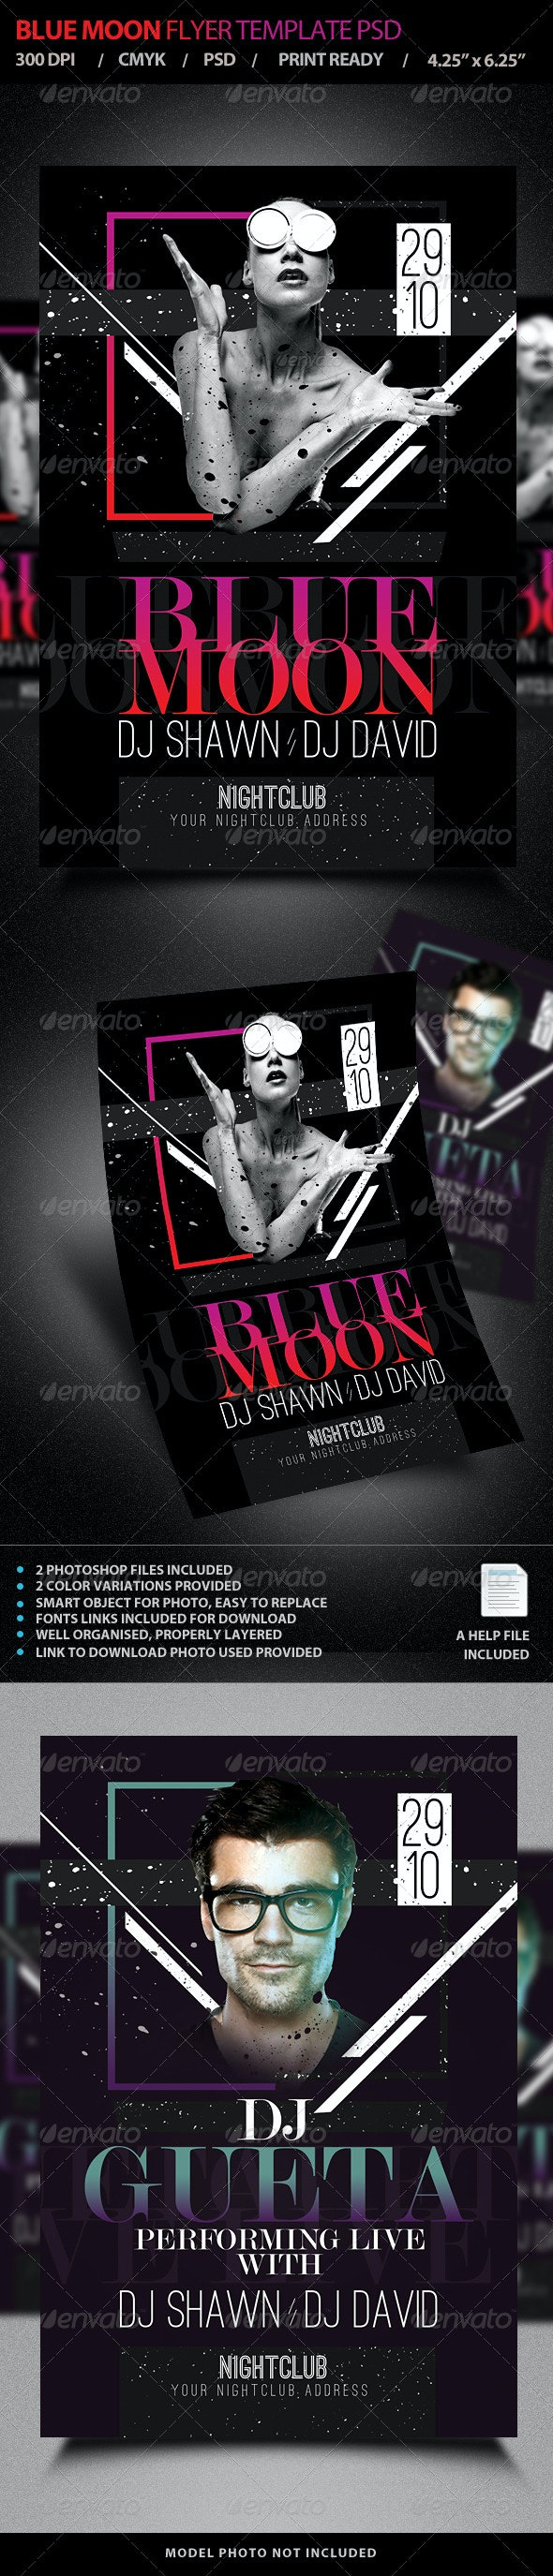 Blue Moon / Live DJ Flyer Template PSD V4 - Clubs & Parties Events